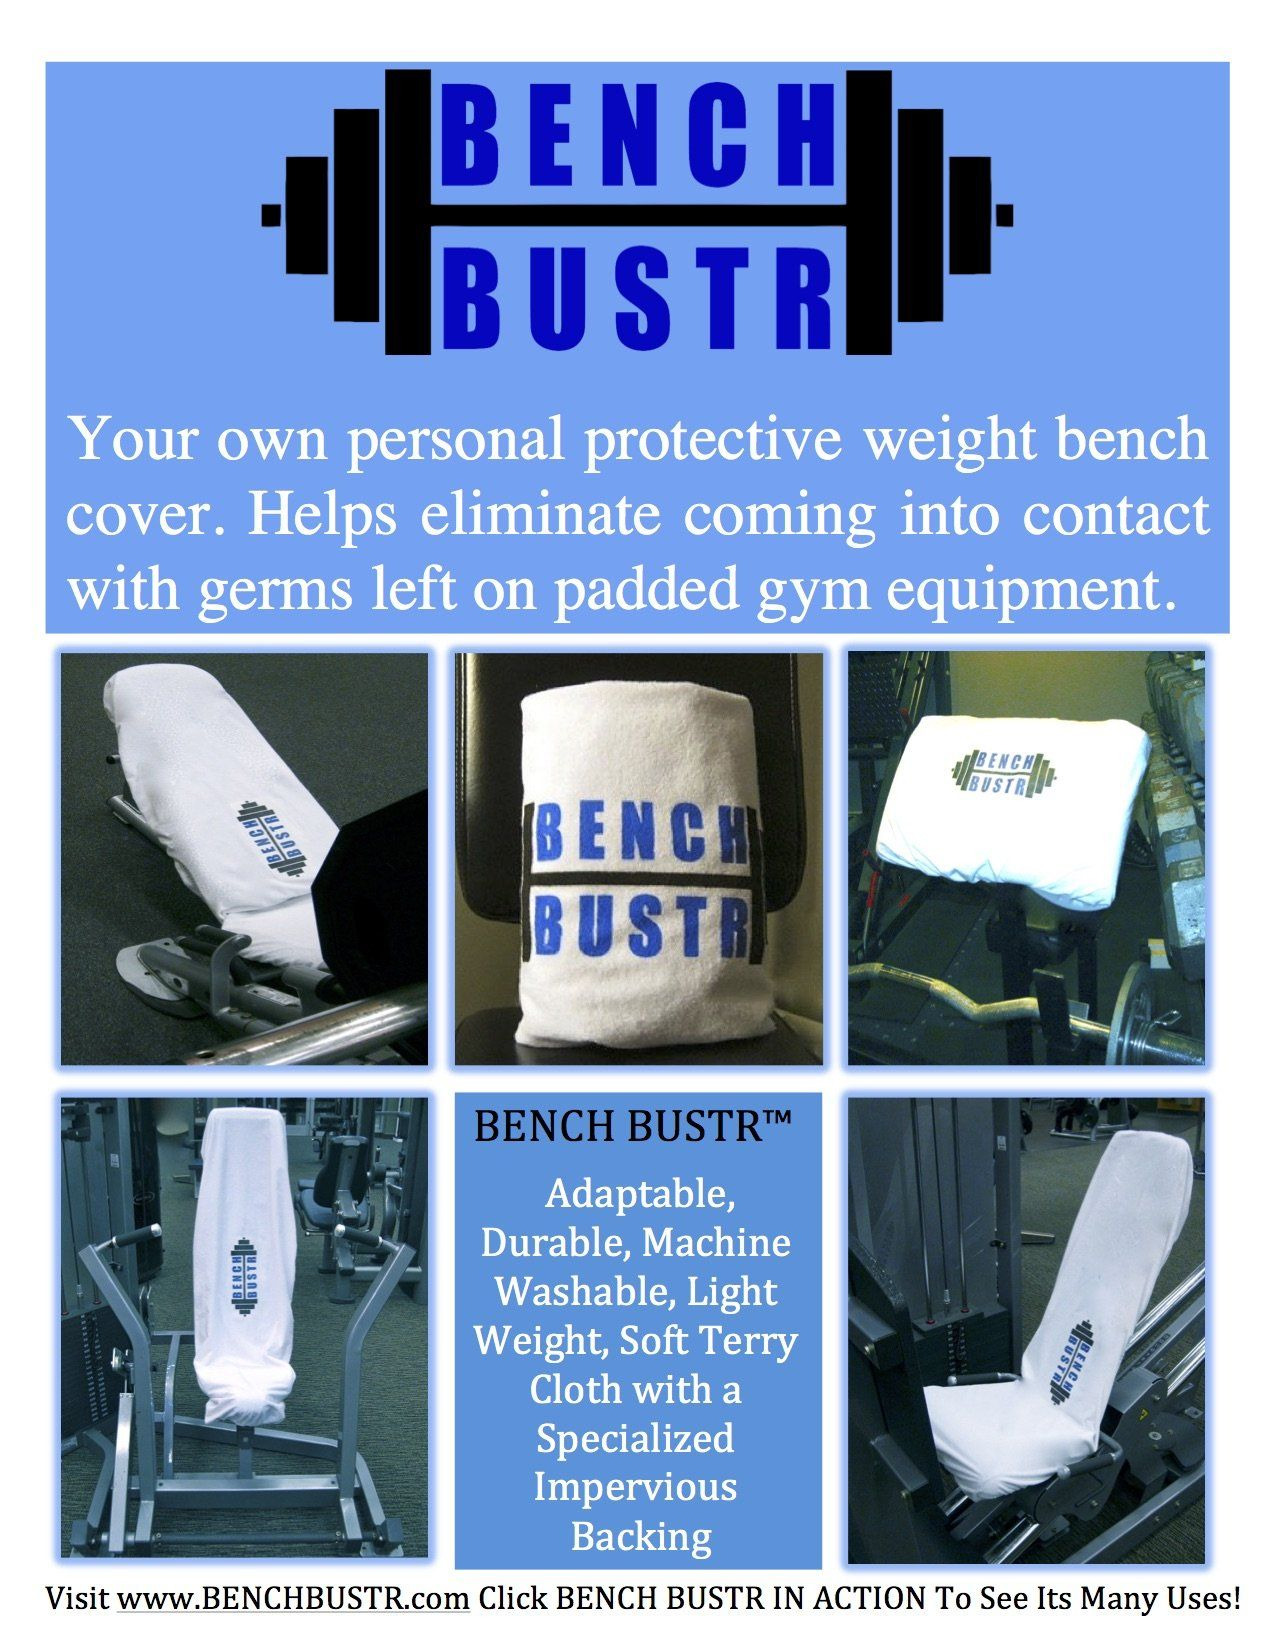 Bench Bustr Weight Bench Fitness Towel Cover Gym Towel Fitness Gym Protective Barrier Towel Cover Bodybuilding Health H Gym Towel Towel Workout Weight Benches